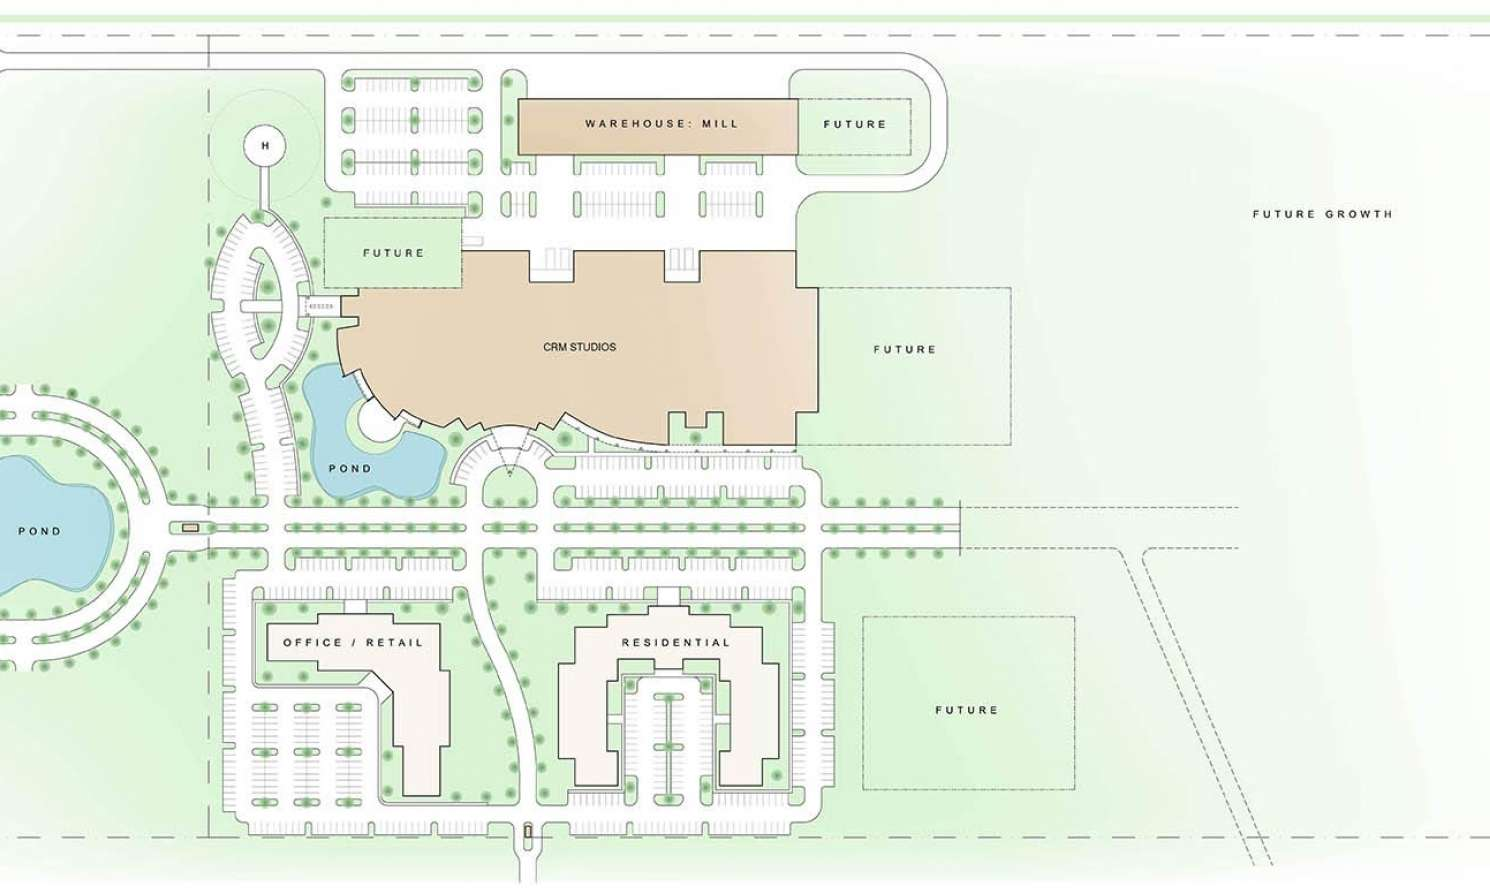 09-1211 07-124 RiverDreamStudio SitePlan Revised